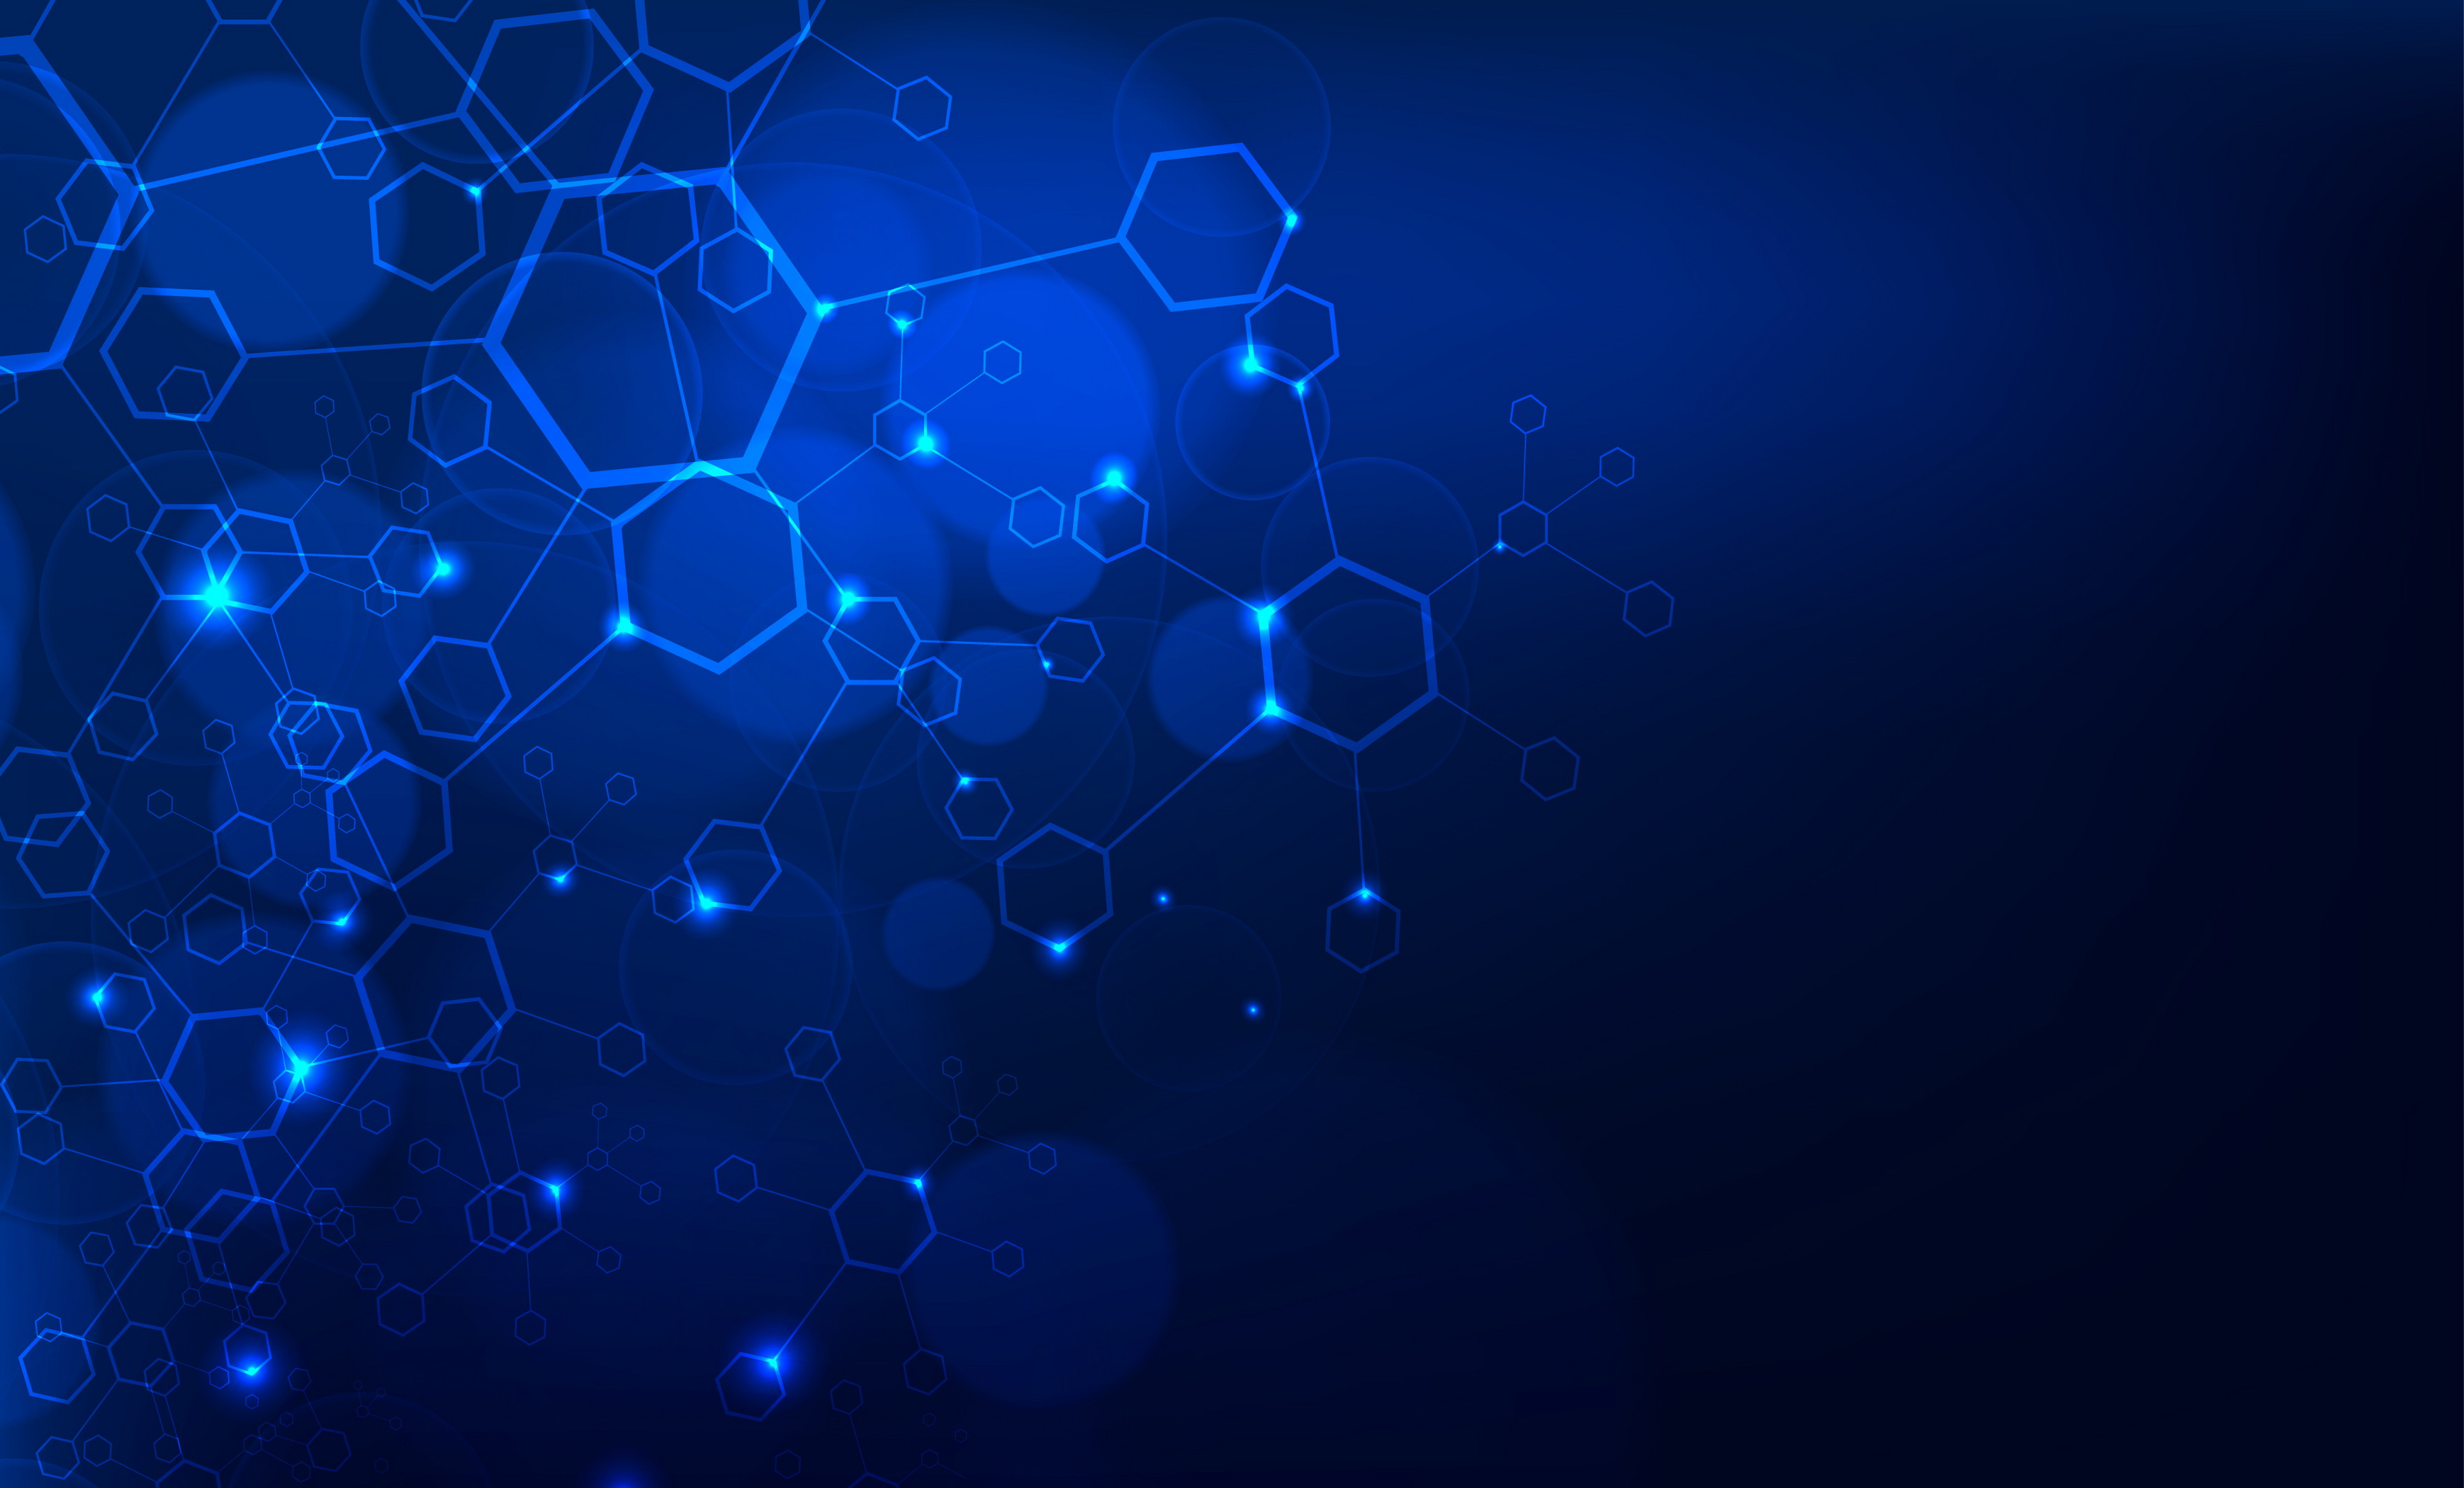 Blue Hexagon Blue Hexagon Geometry Background Image For